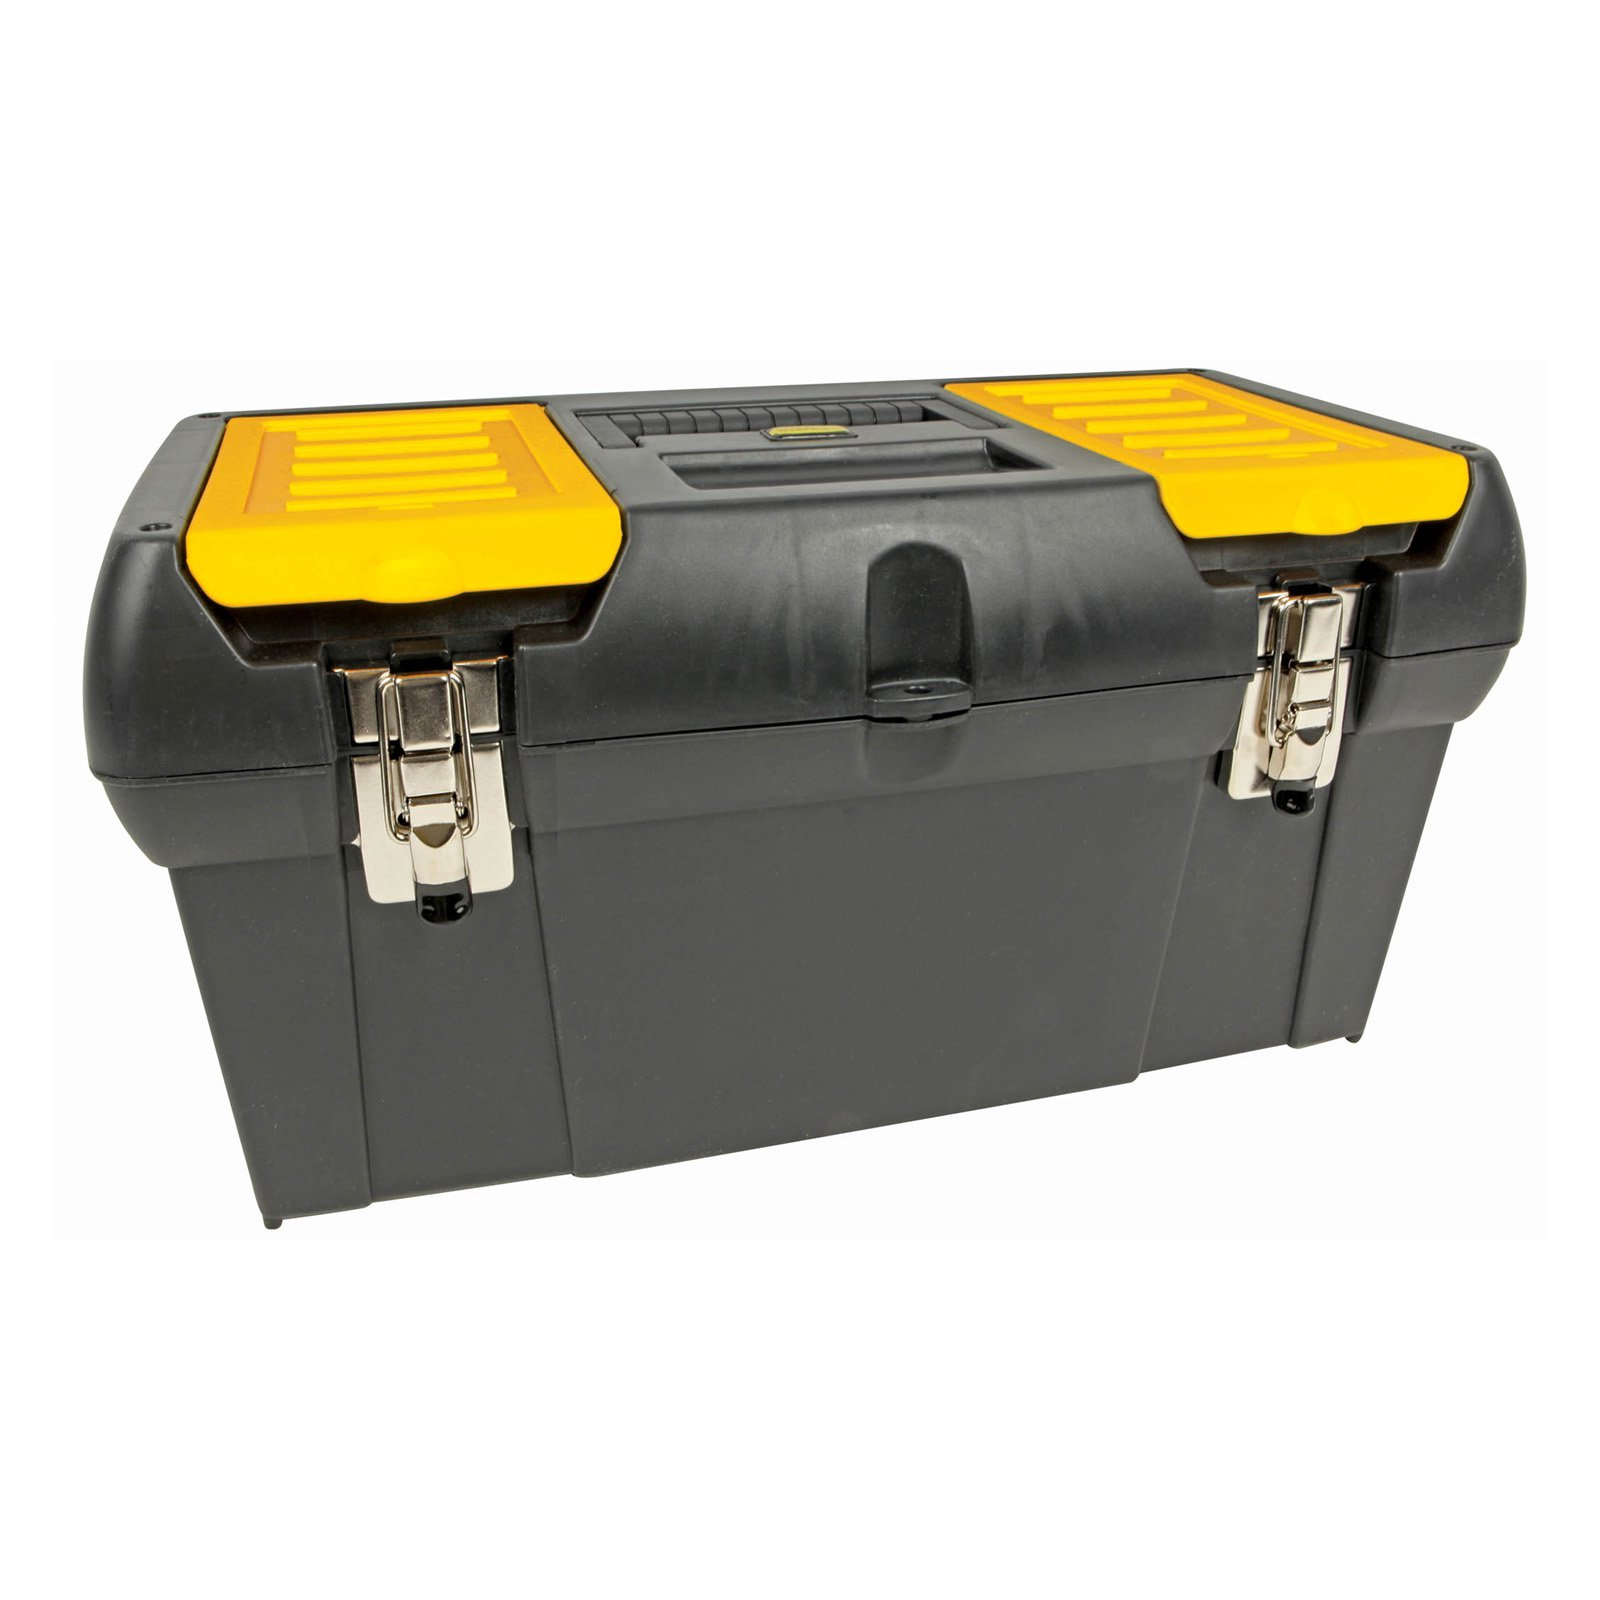 Stanley Series 2000 Toolbox with Tray, 2 Lid Compartments